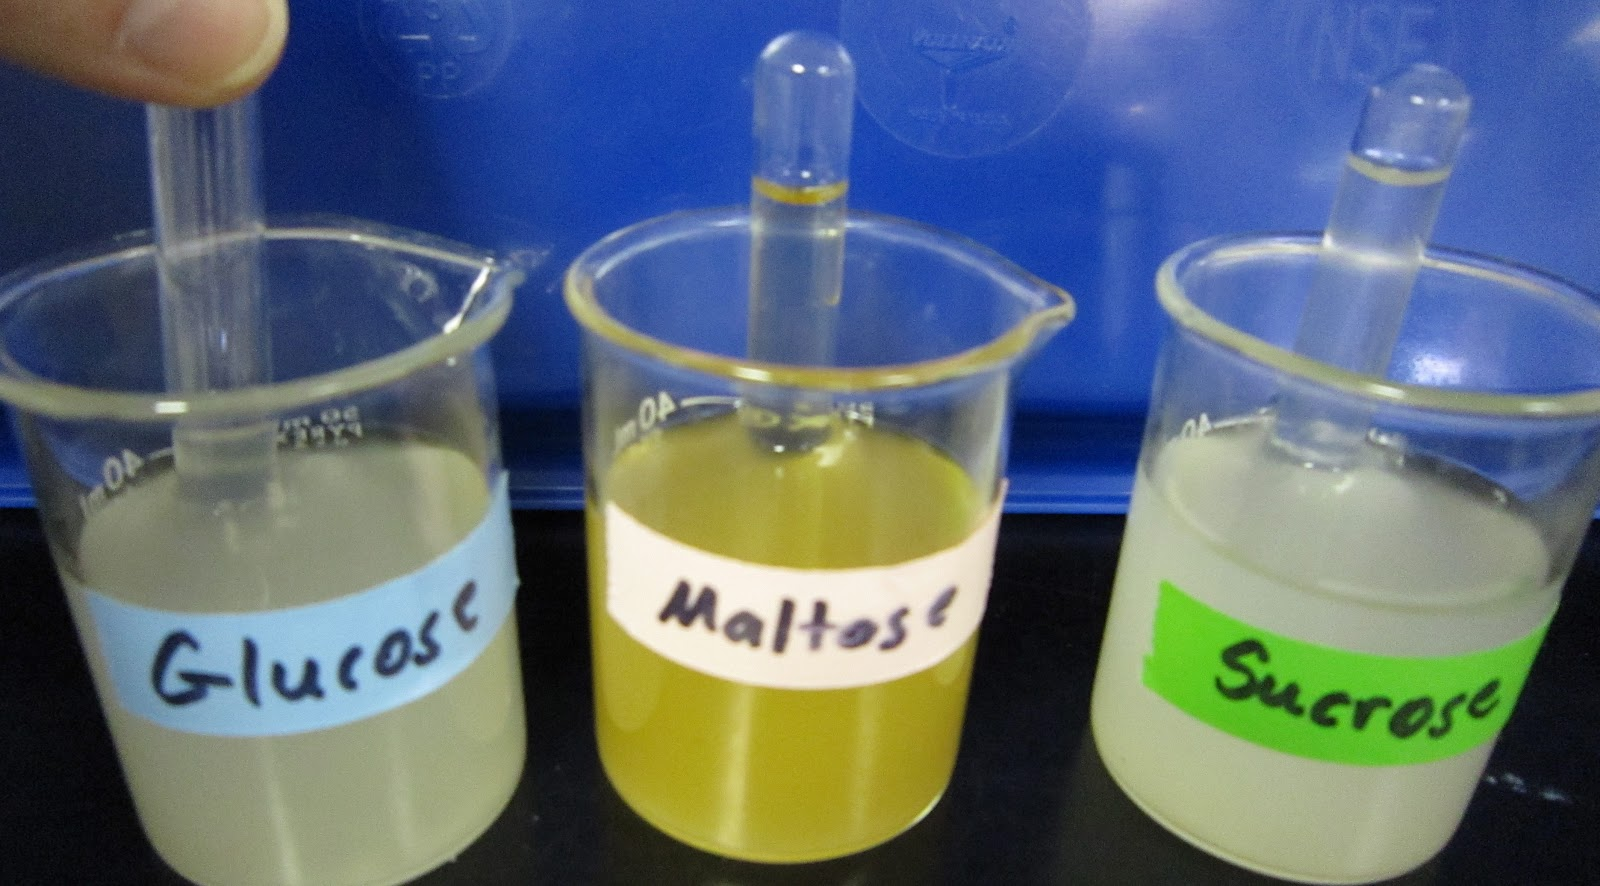 experiment 6 respiration fermentation in yeast Yeast fermentation lab report sbi4u  cellular respiration and fermentation 1469 words | 6  in the first experiment, yeast was grown in various carbohydrate.